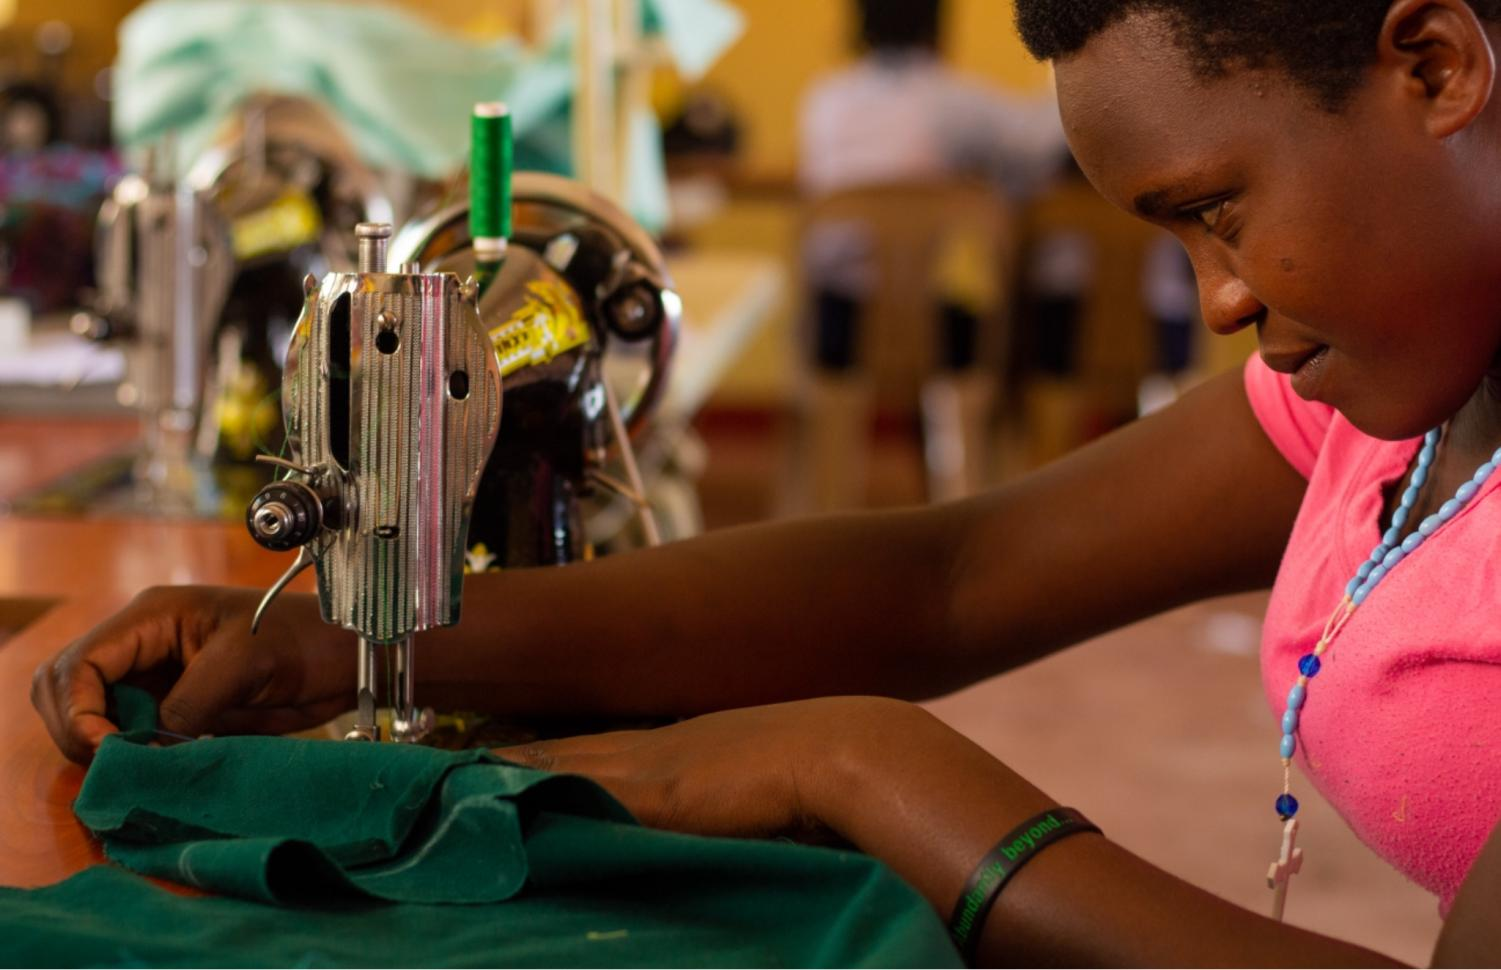 The+sewing+program+helps+students+learn+to+make+their+own+clothes%2C+and+pay+for+tuition+with+clothes+they+sell